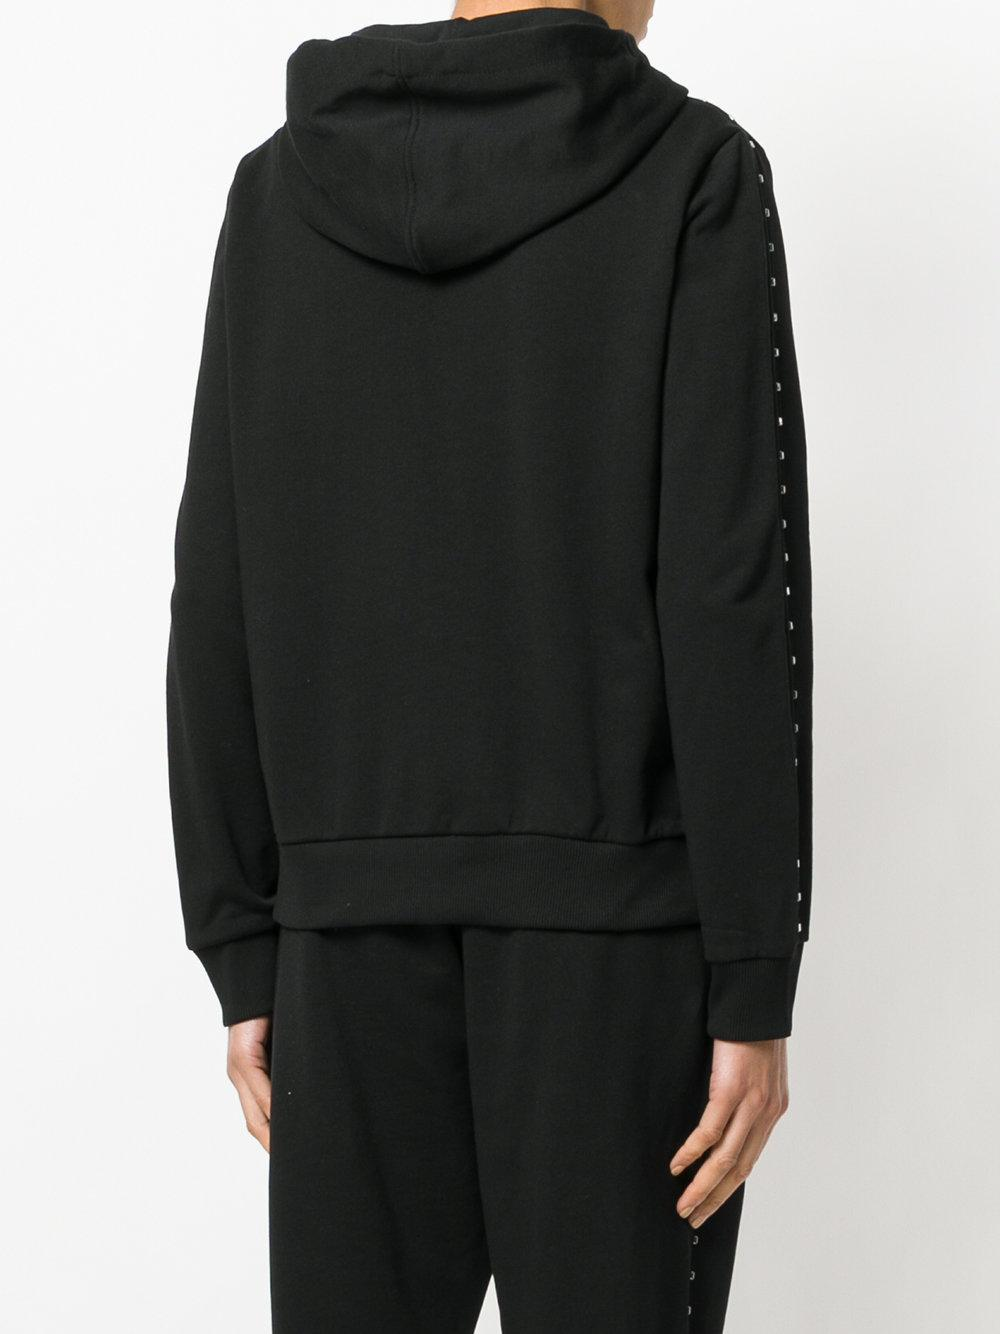 Versace Jeans Couture Cotton Studded Hooded Sweatshirt in Black